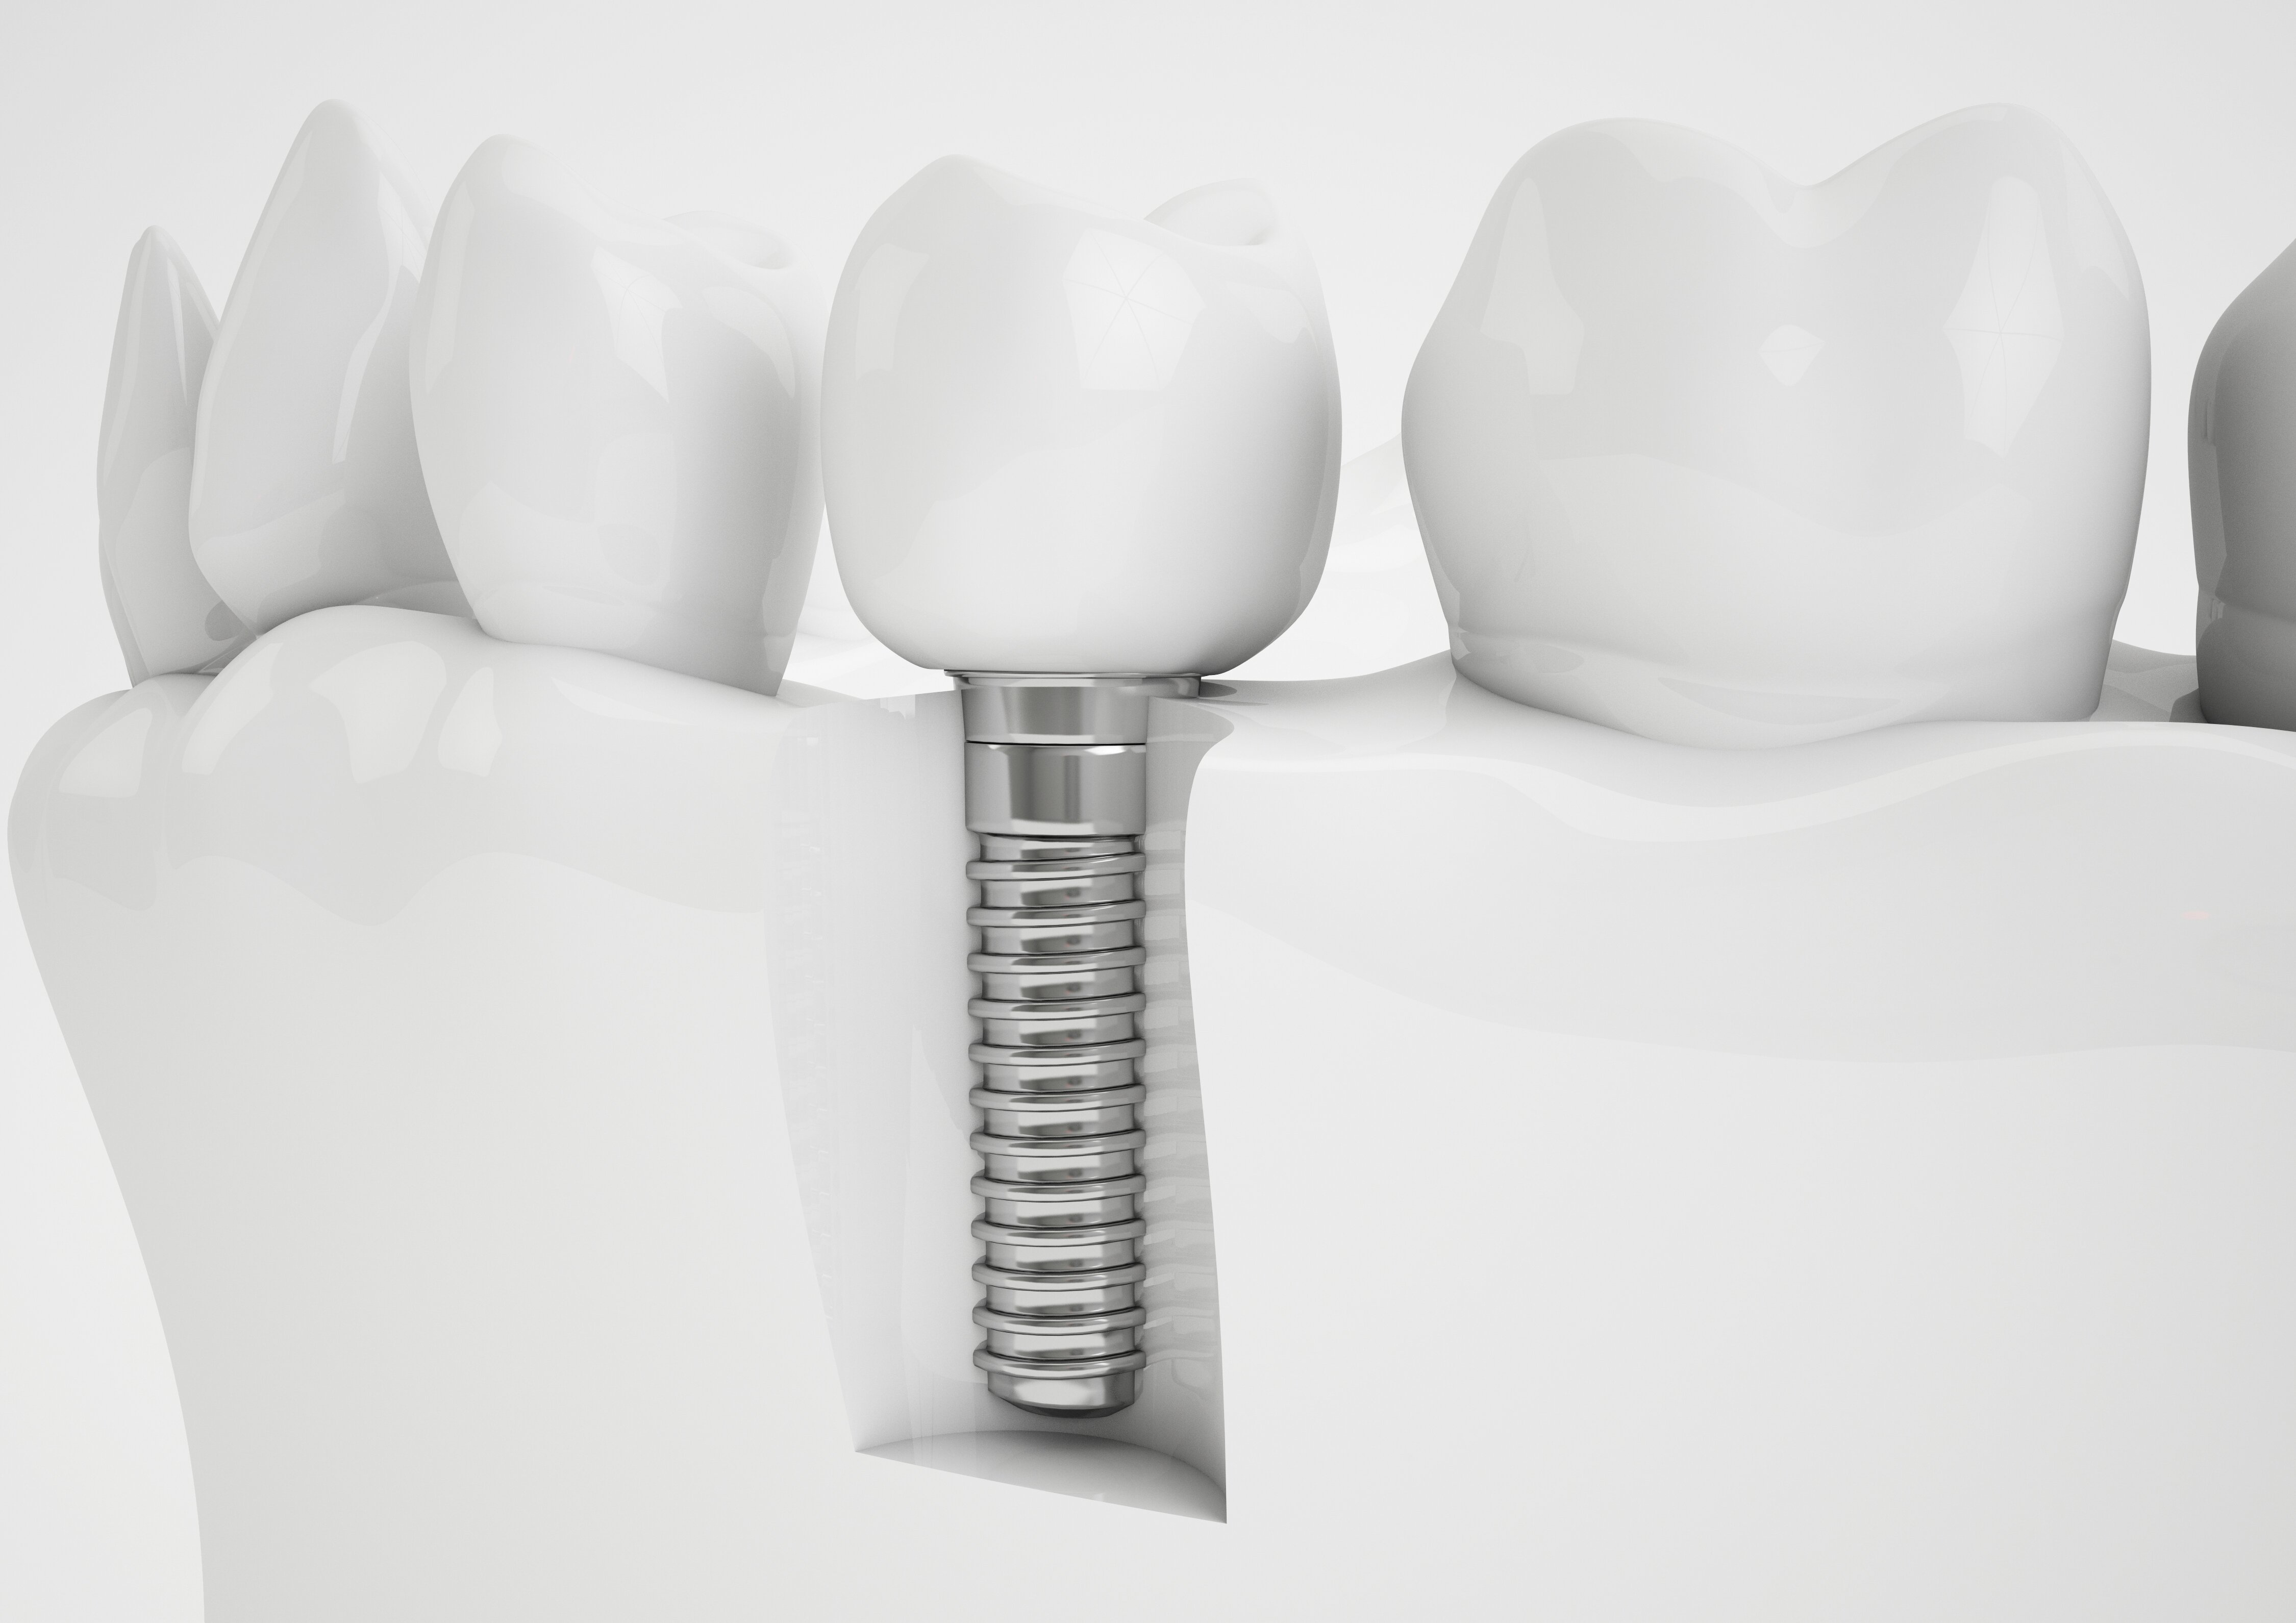 Concept of a dental implant